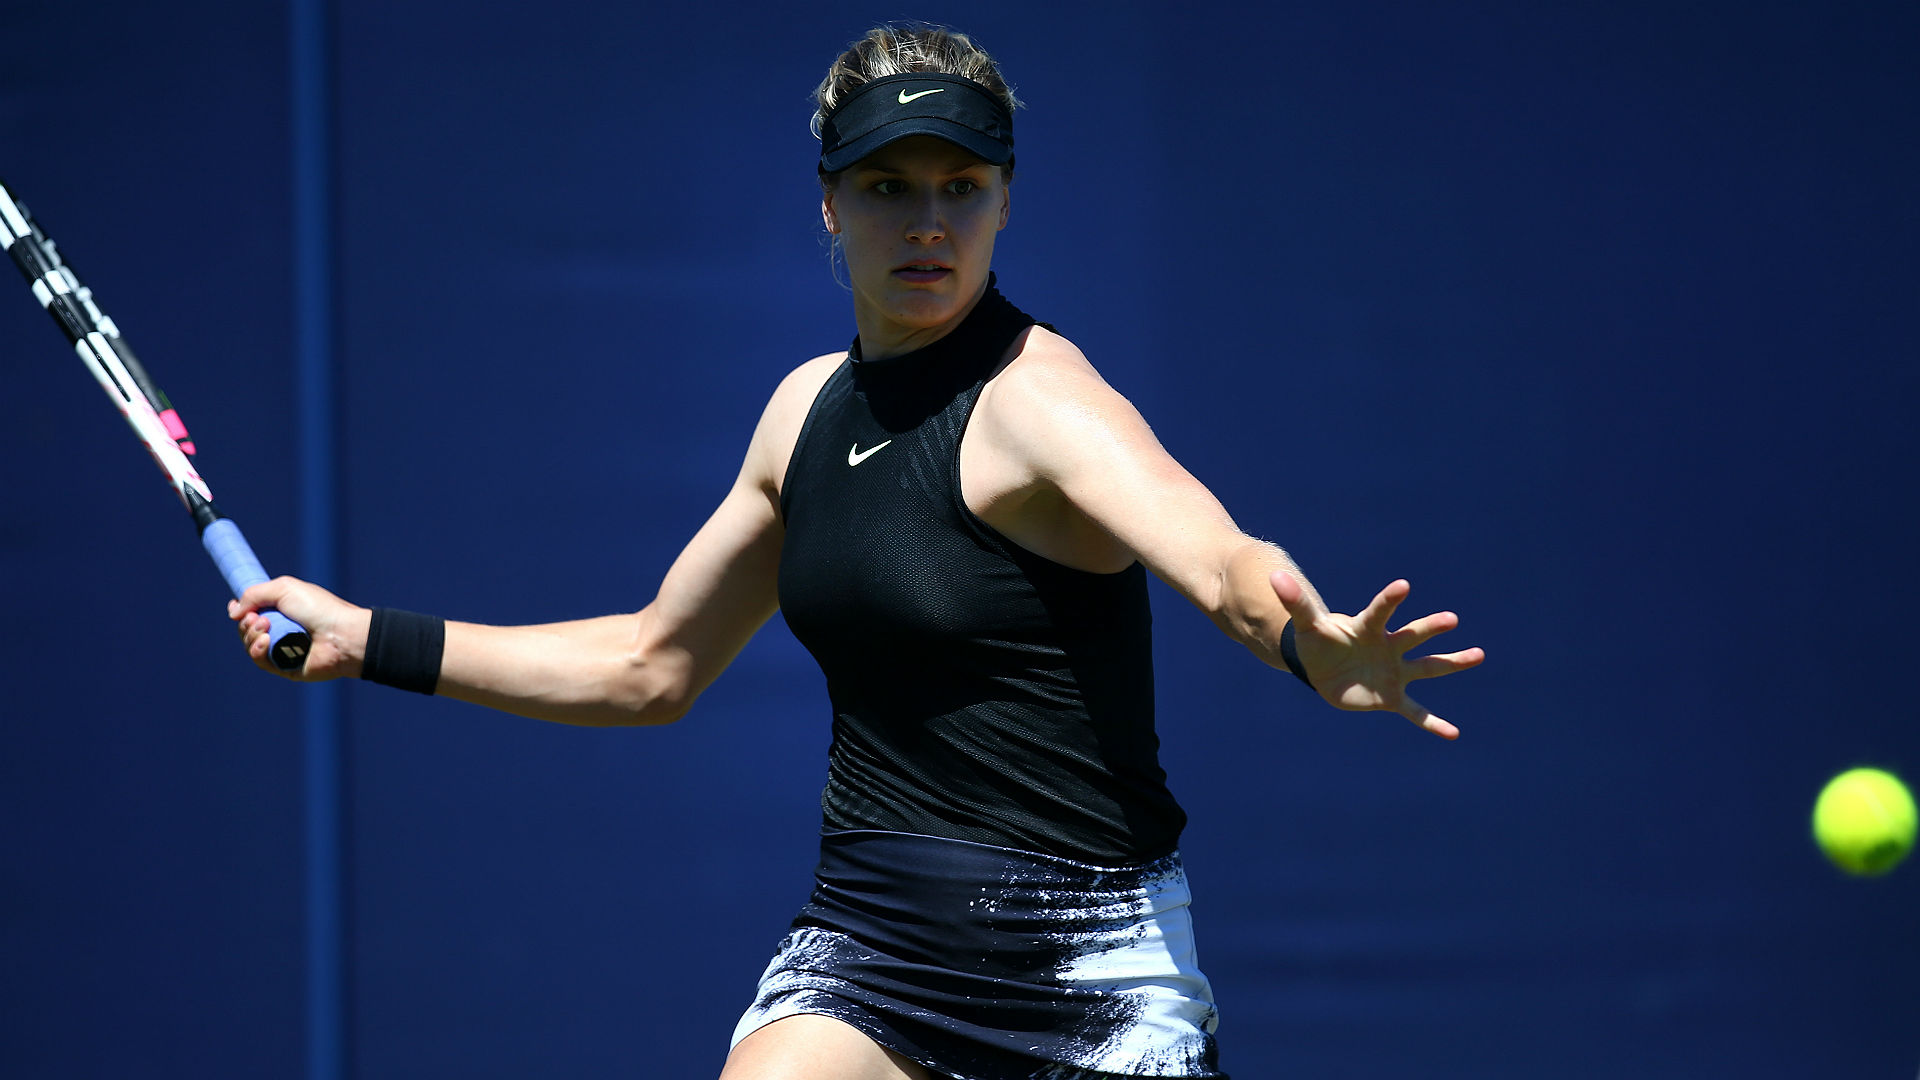 Bouchard falls to Vekic in 1st Round Action at Rogers Cup